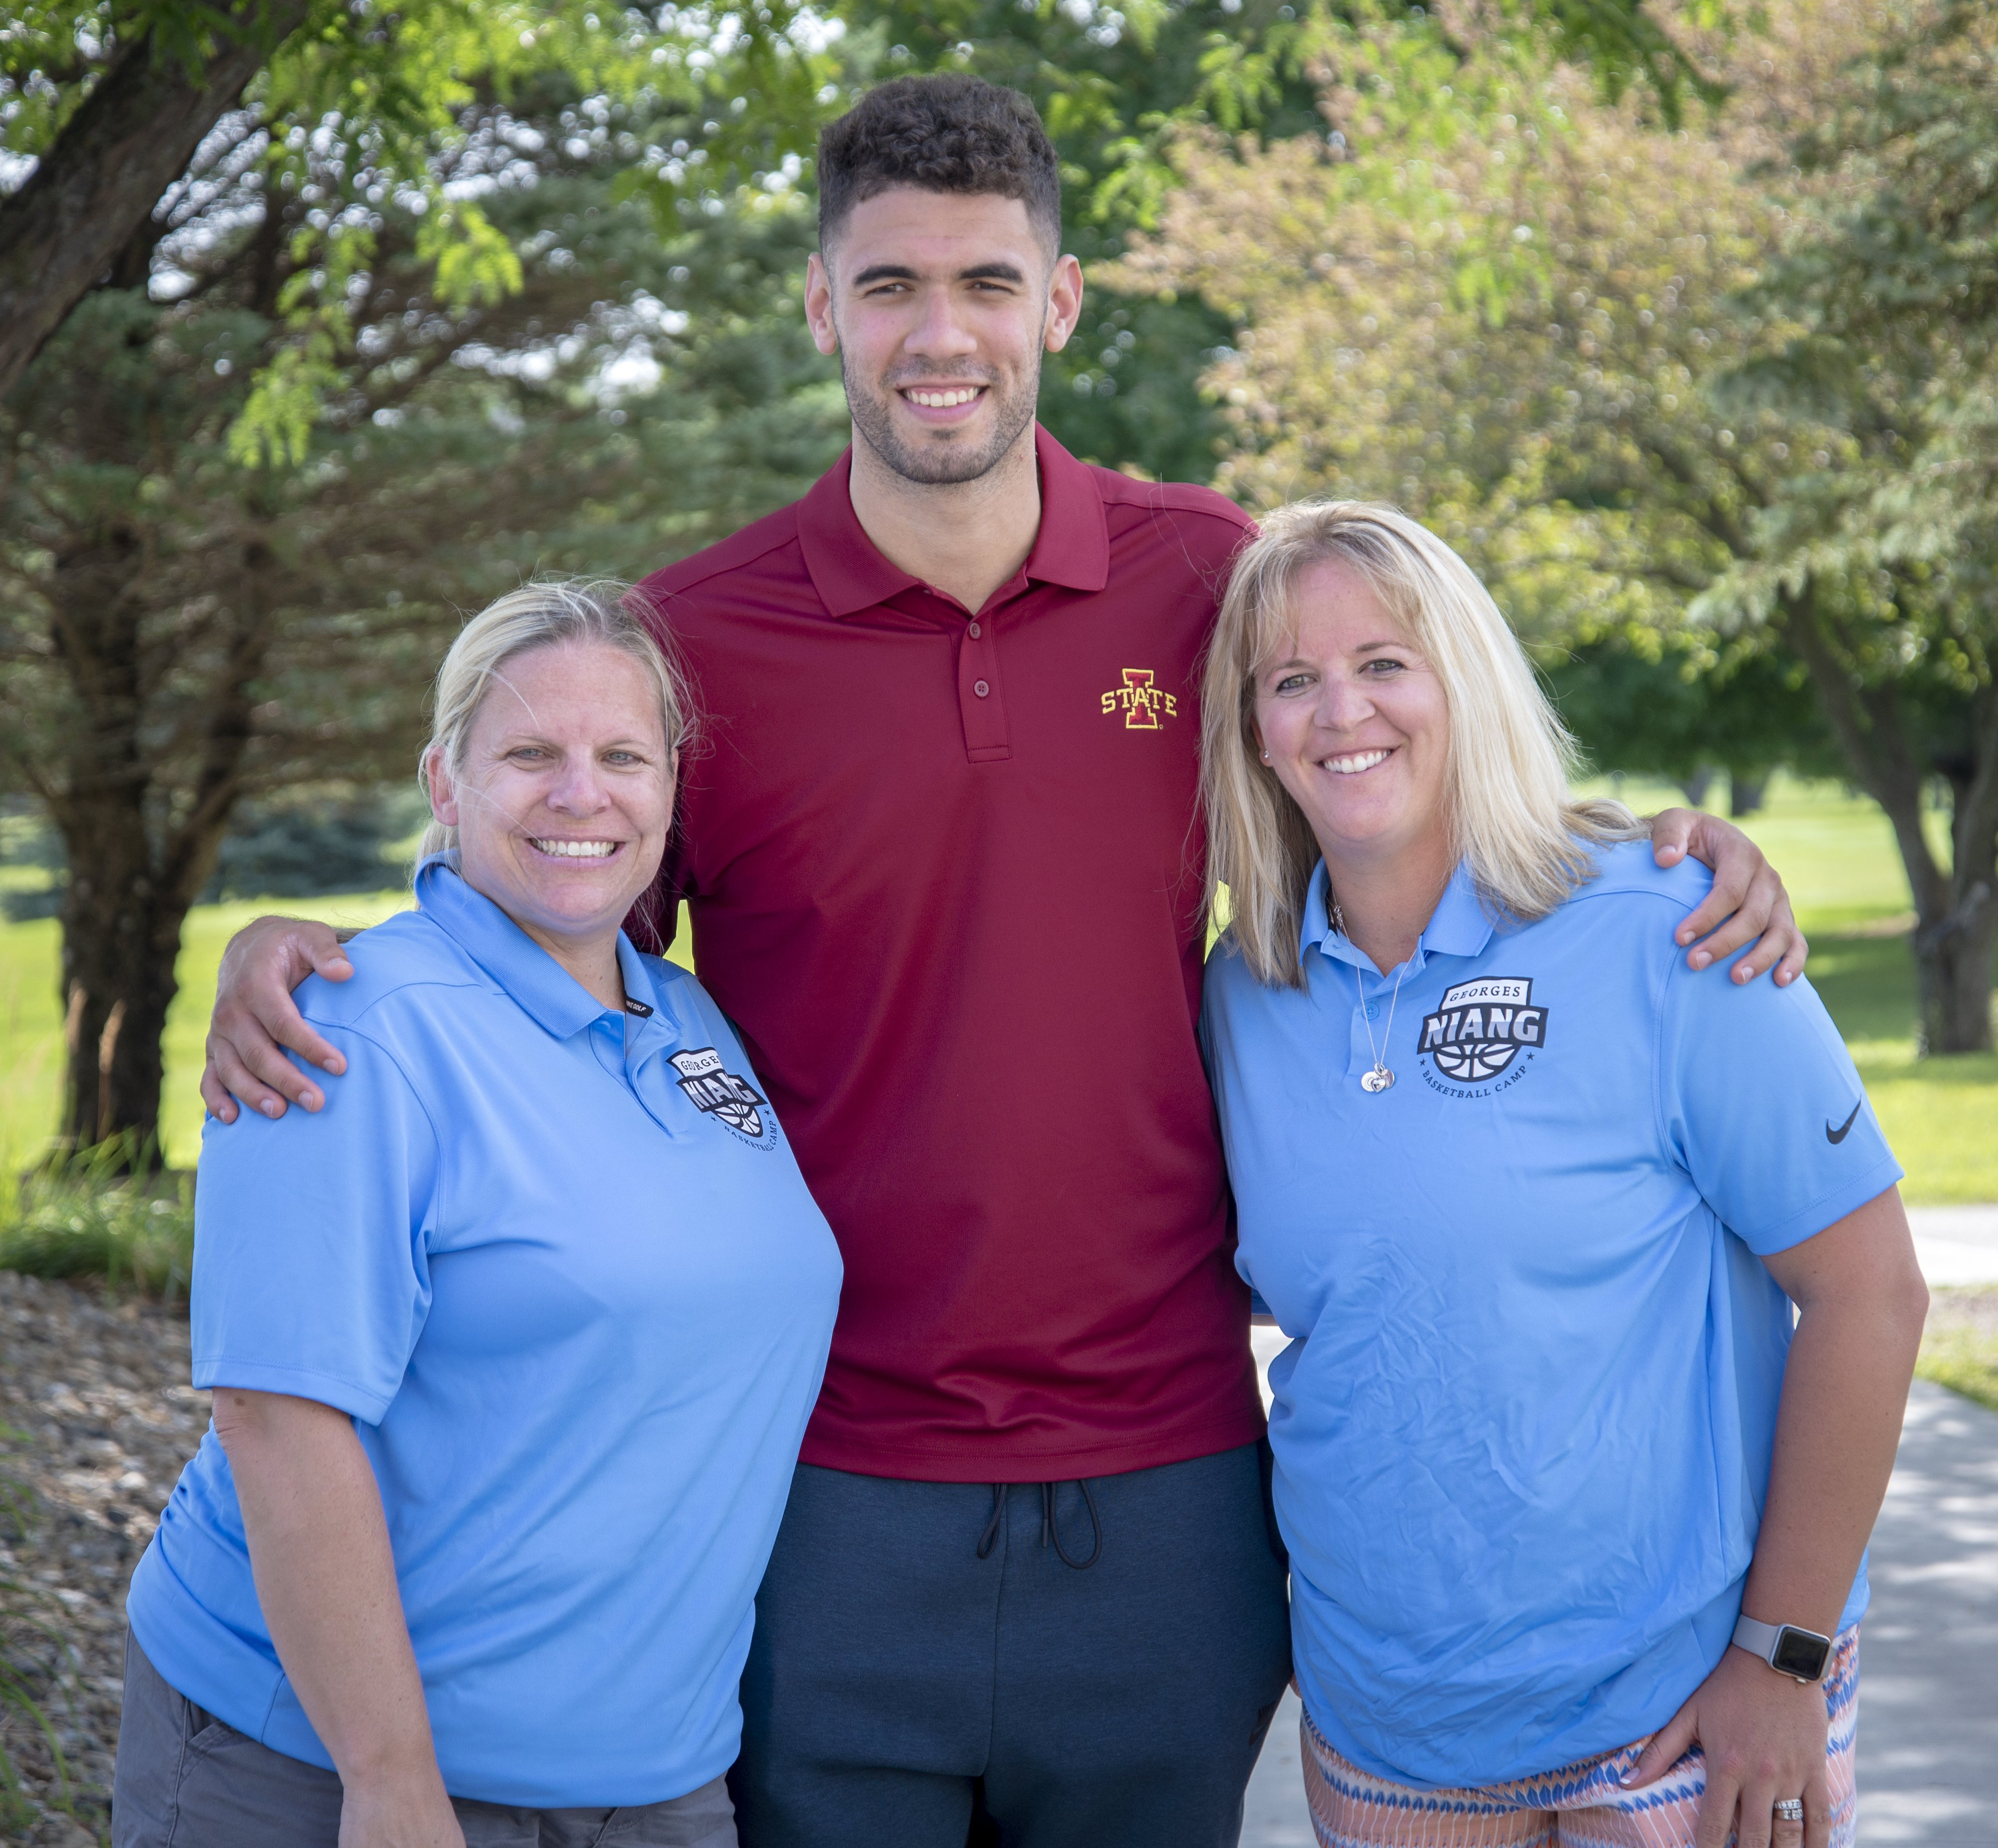 Georges Niang Golf Outing-Georges Niange with Event co-chairs Lyndsey Fennelly & Betsy Waite